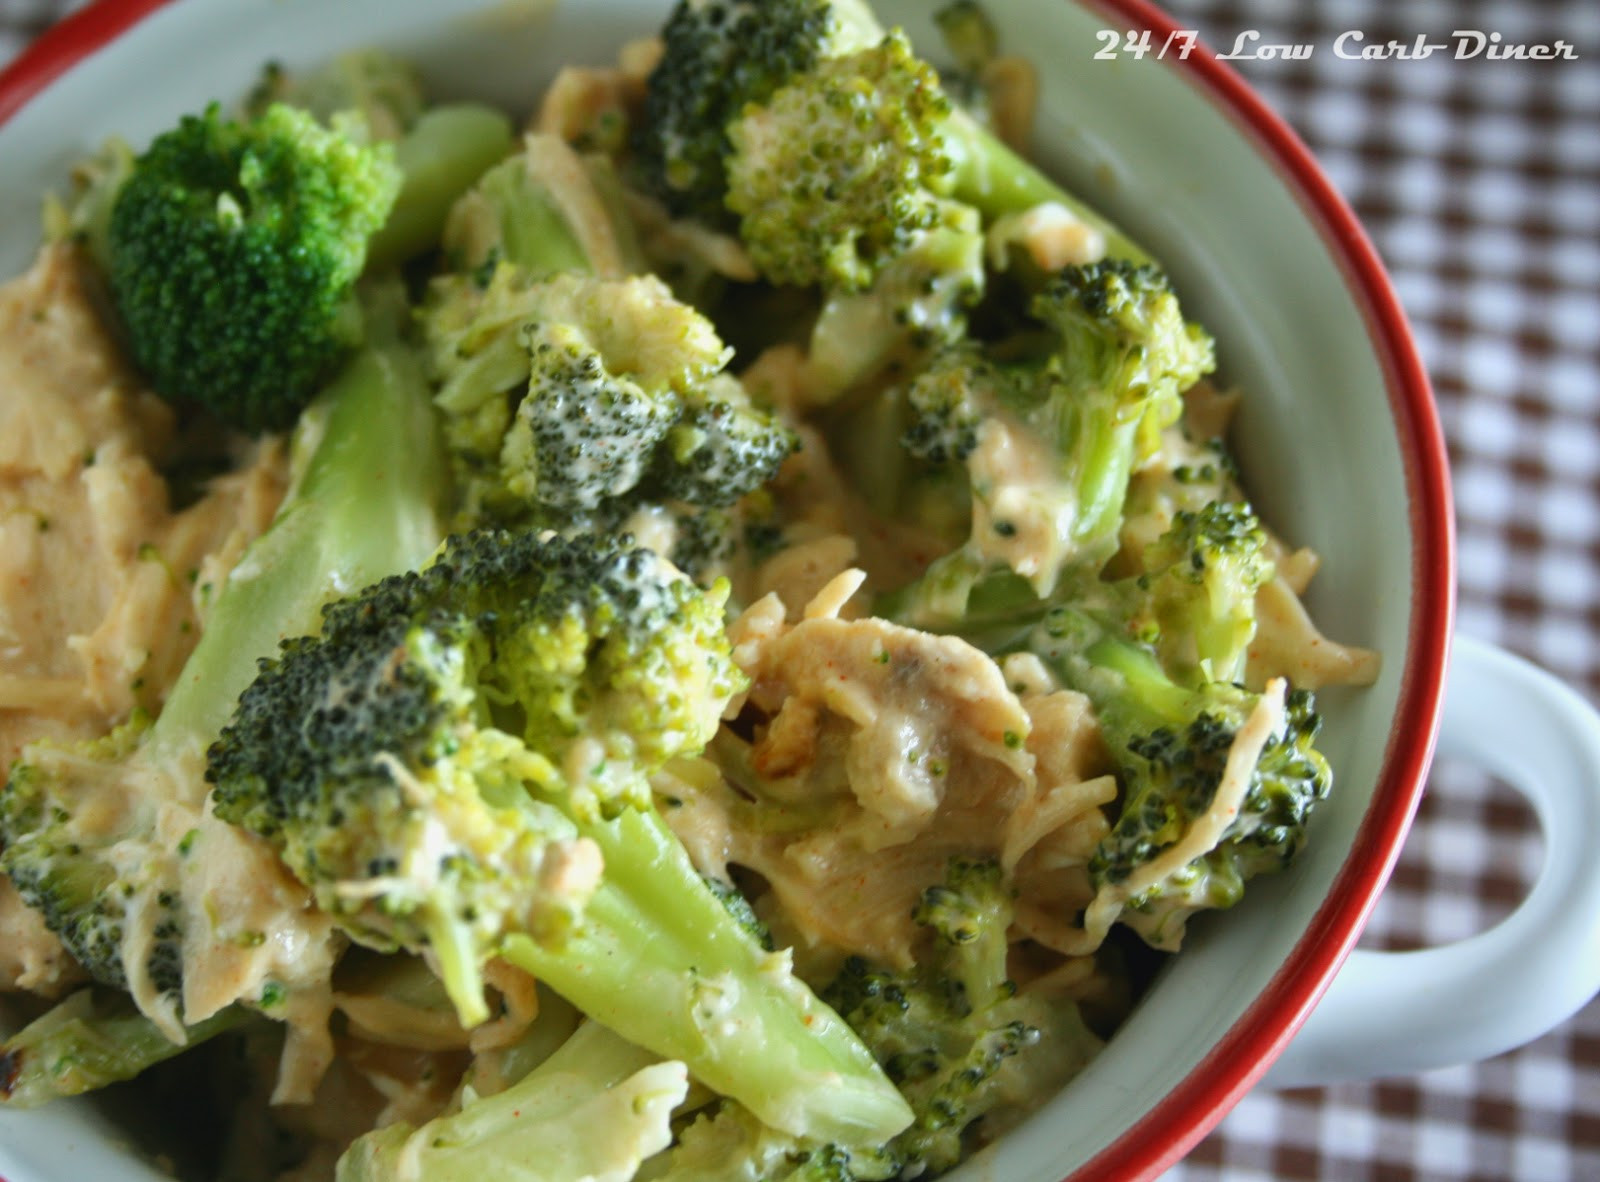 Chicken And Broccoli Bake  24 7 Low Carb Diner Chicken and Broccoli Casserole for 2